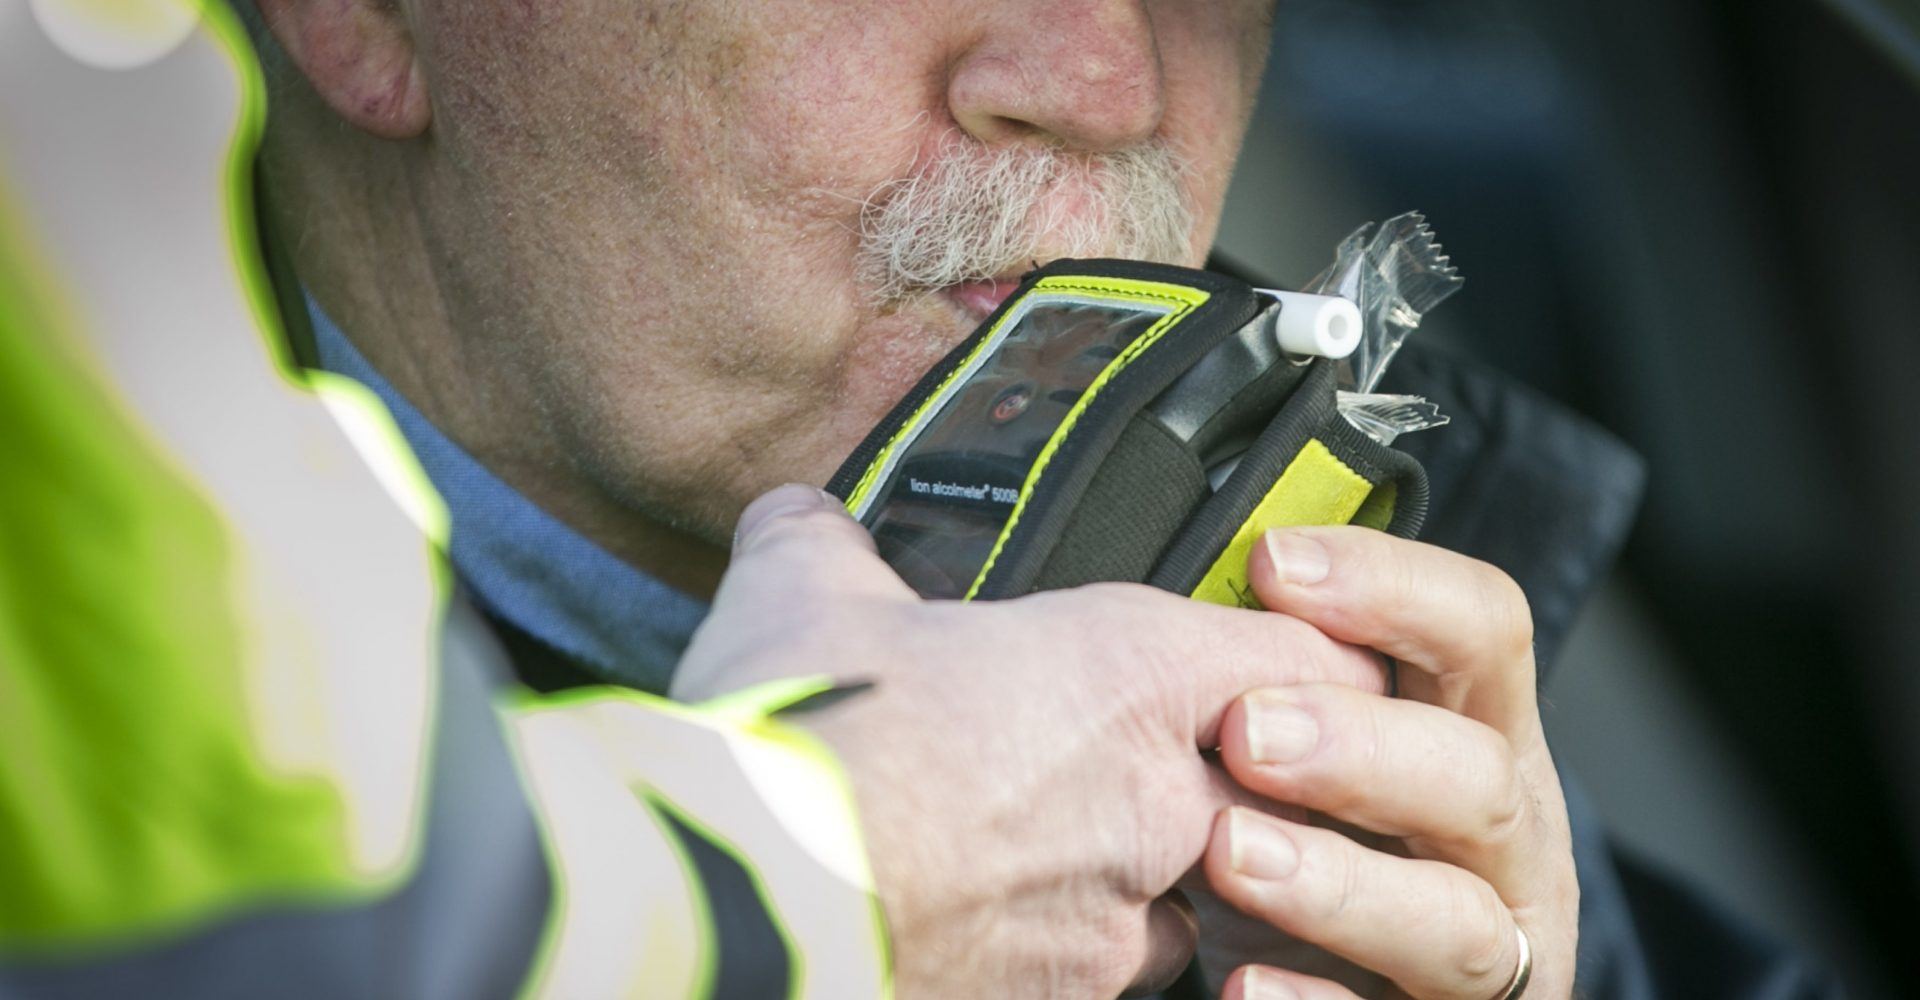 All new cars to be fitted with breathalyser tech from 2022